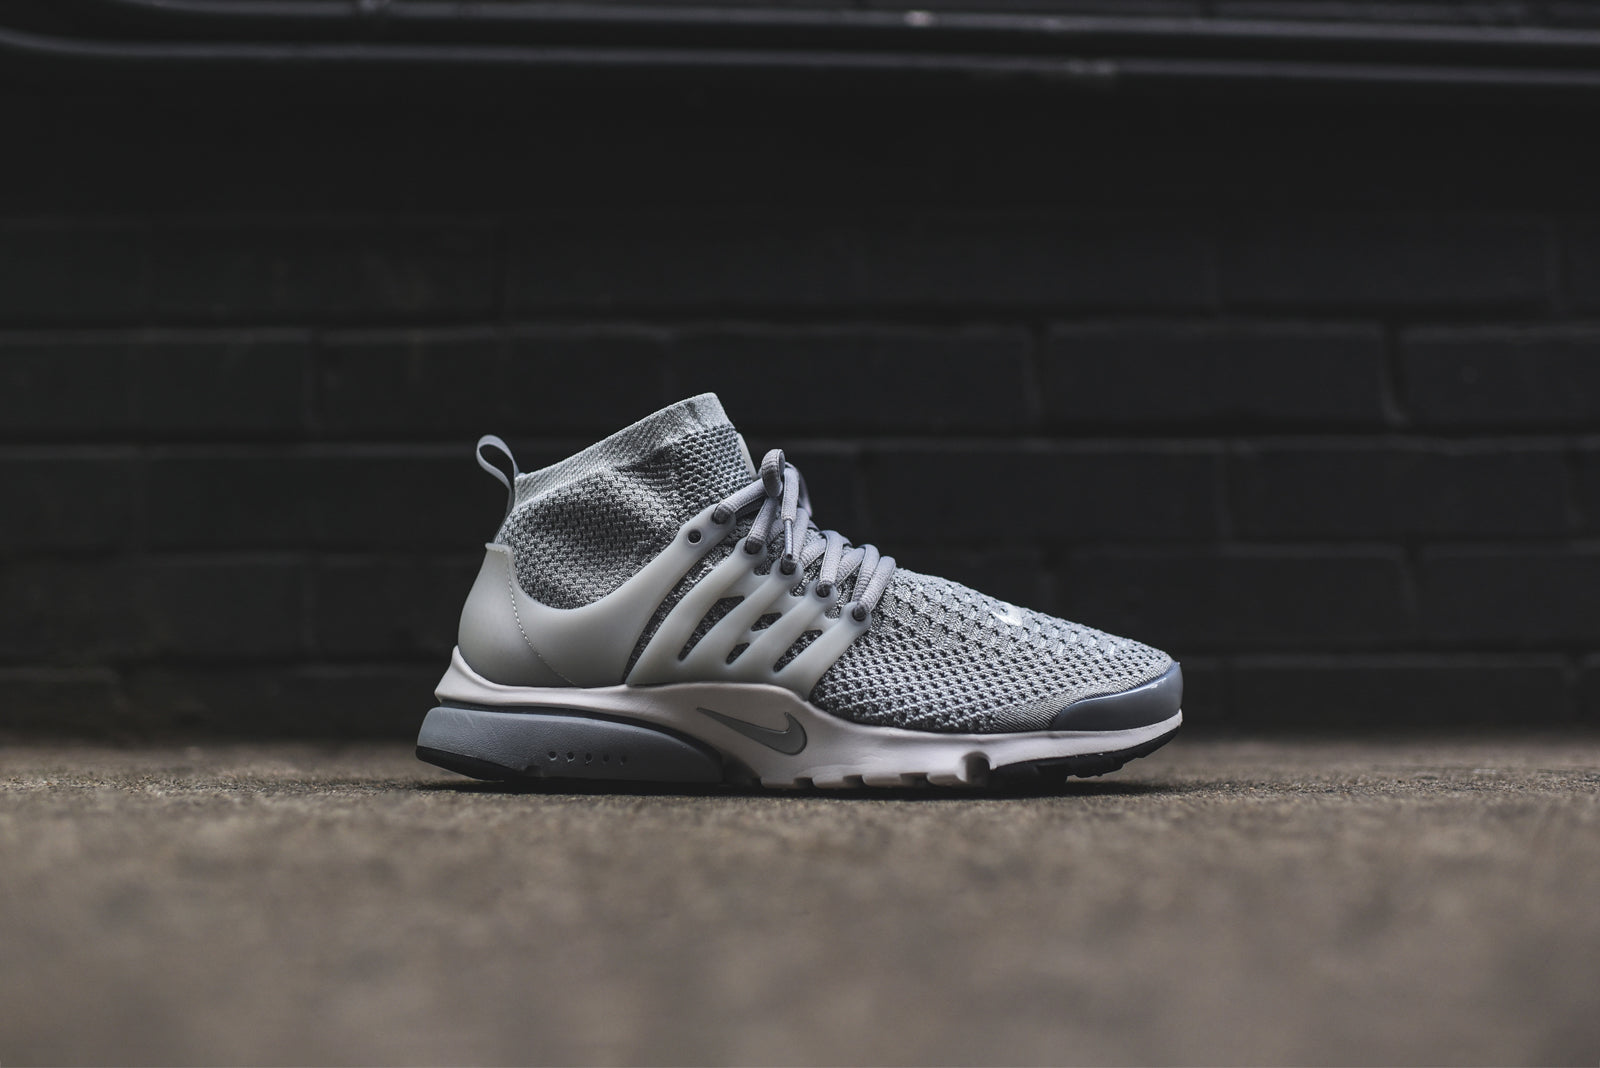 check out d6824 51d86 Nike Air Presto Ultra Flyknit Collection – Kith